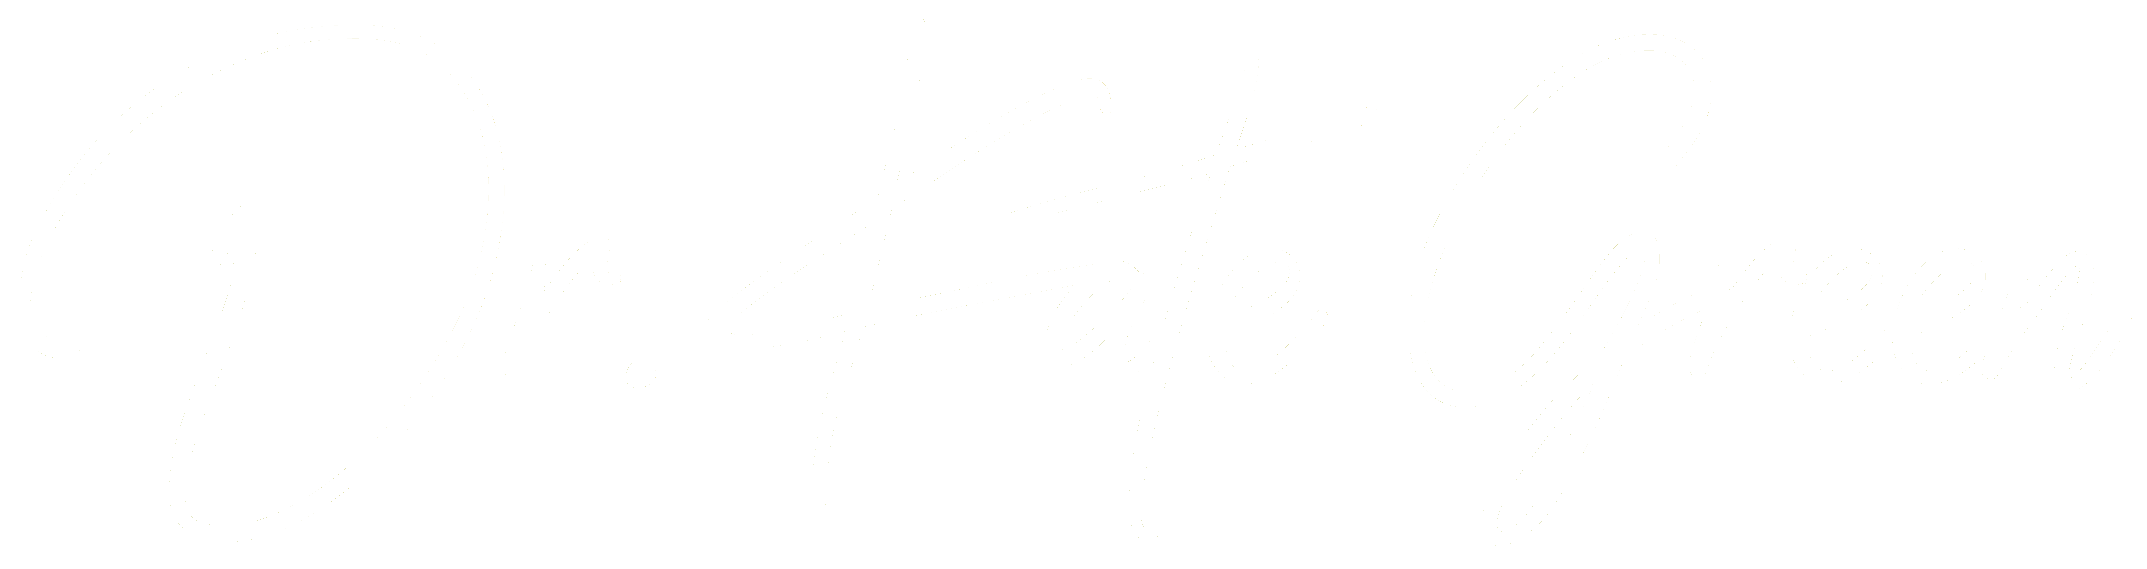 'Dr. Kate Green' in stylized cursive